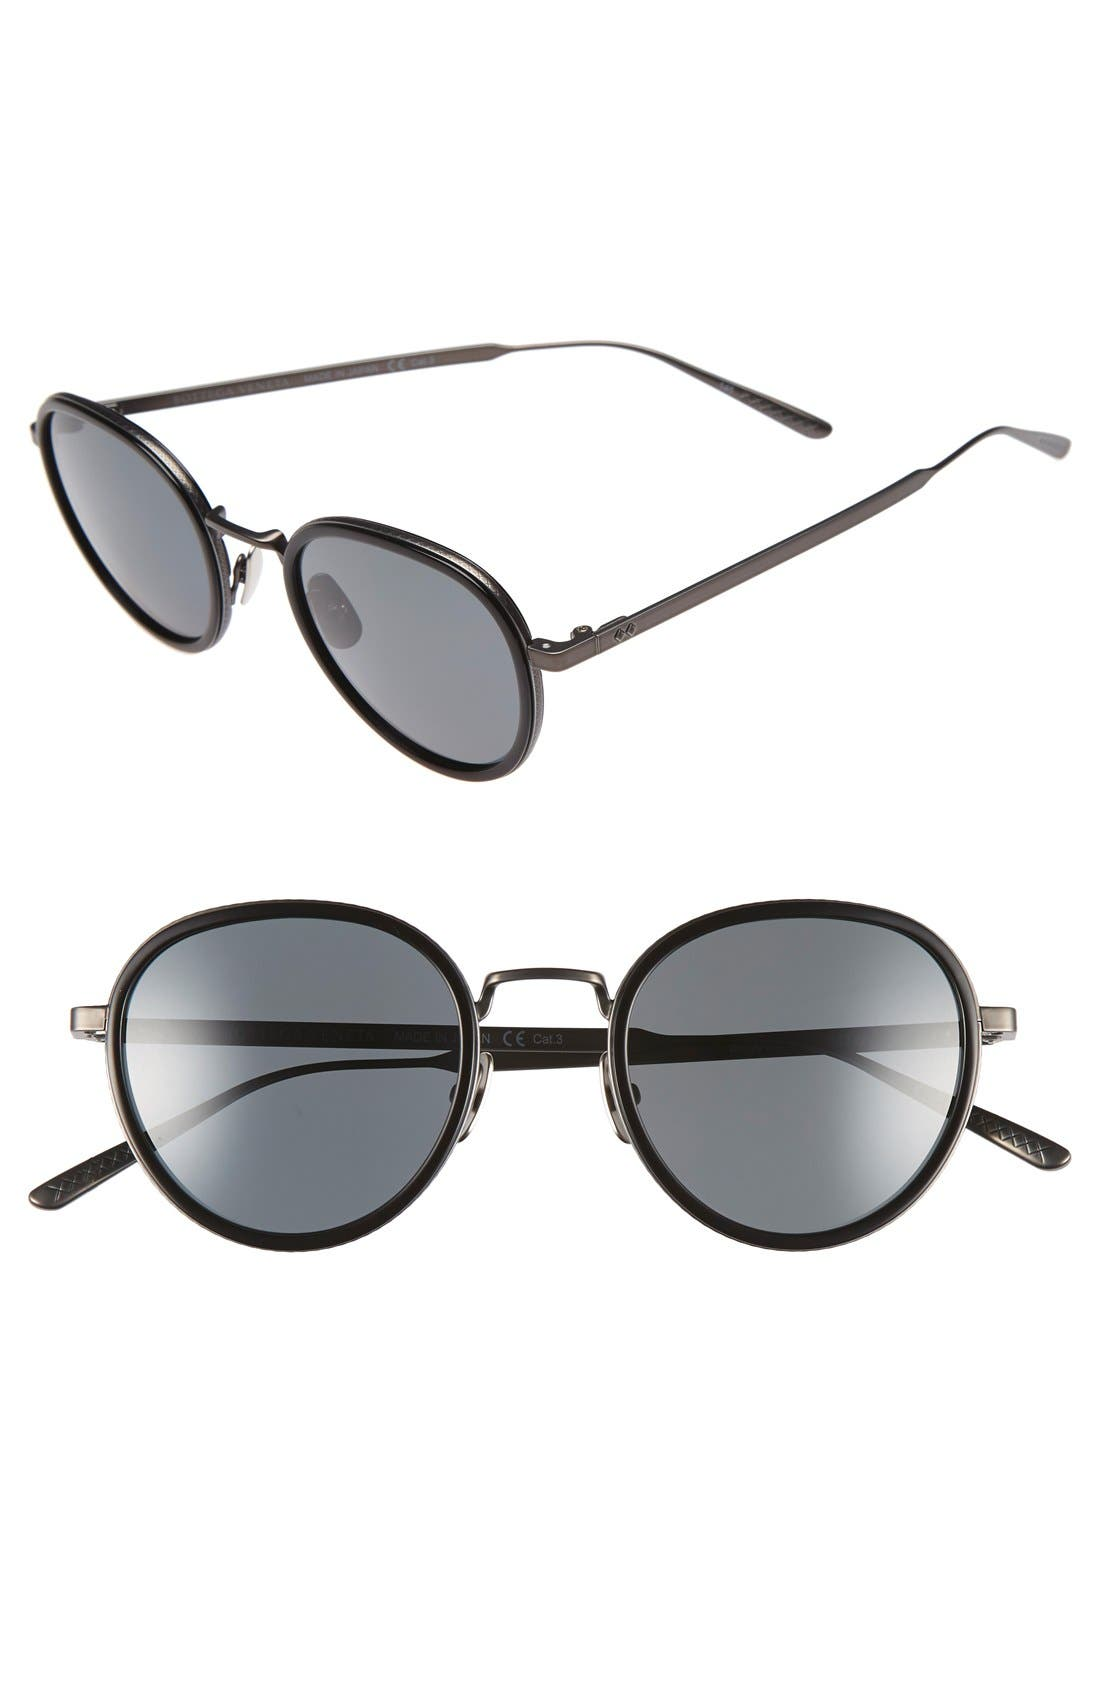 Bottega Veneta 49mm Round Sunglasses